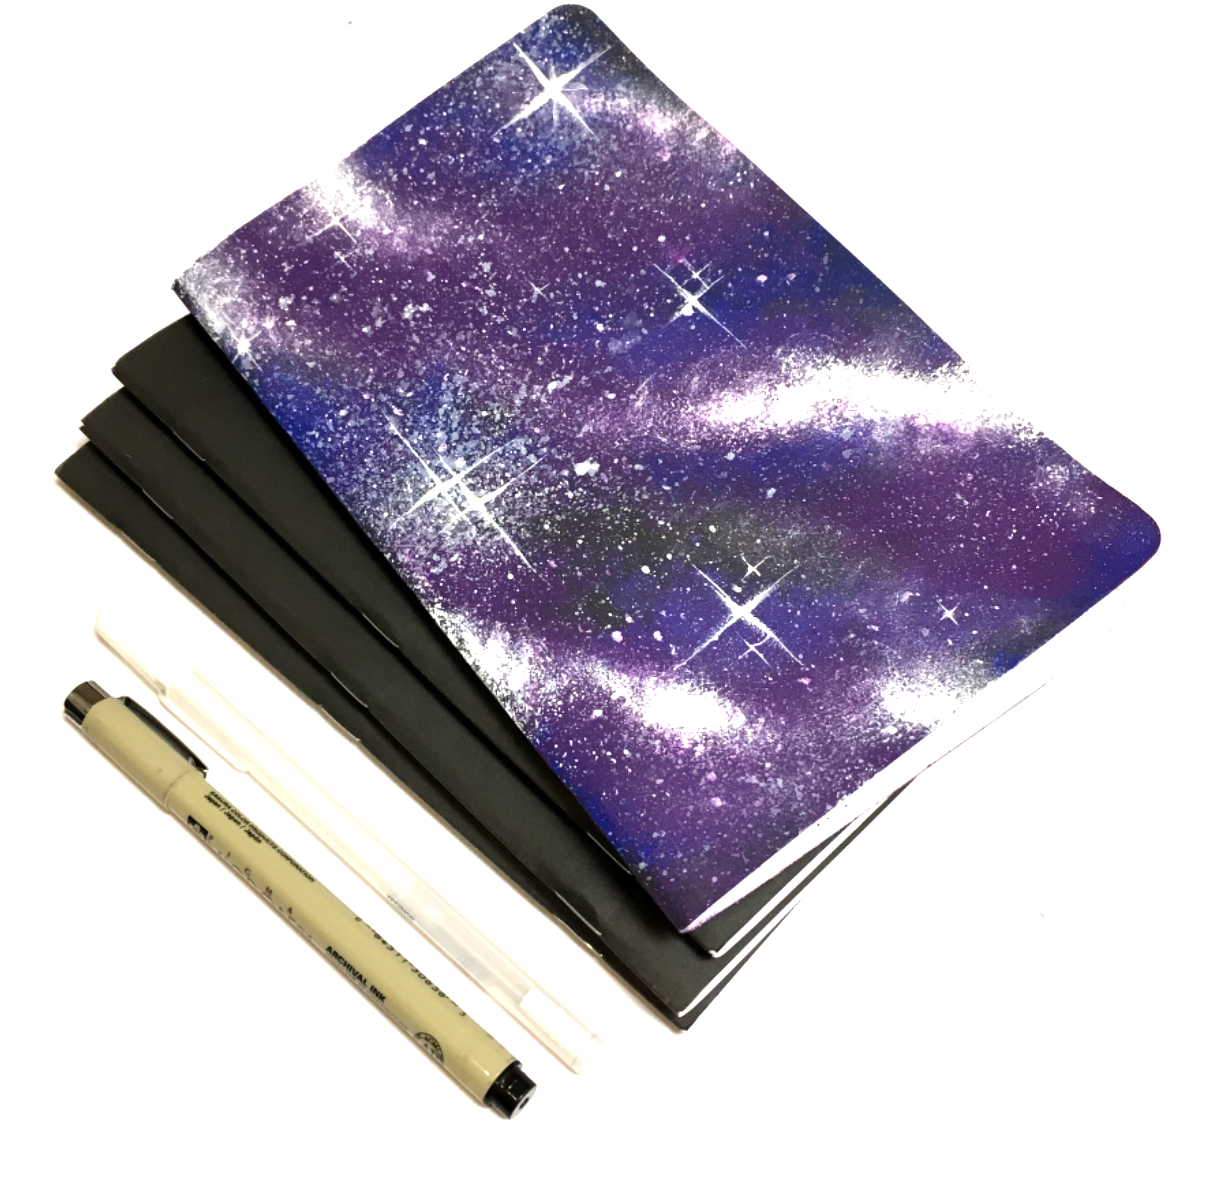 Galaxy Notebooks